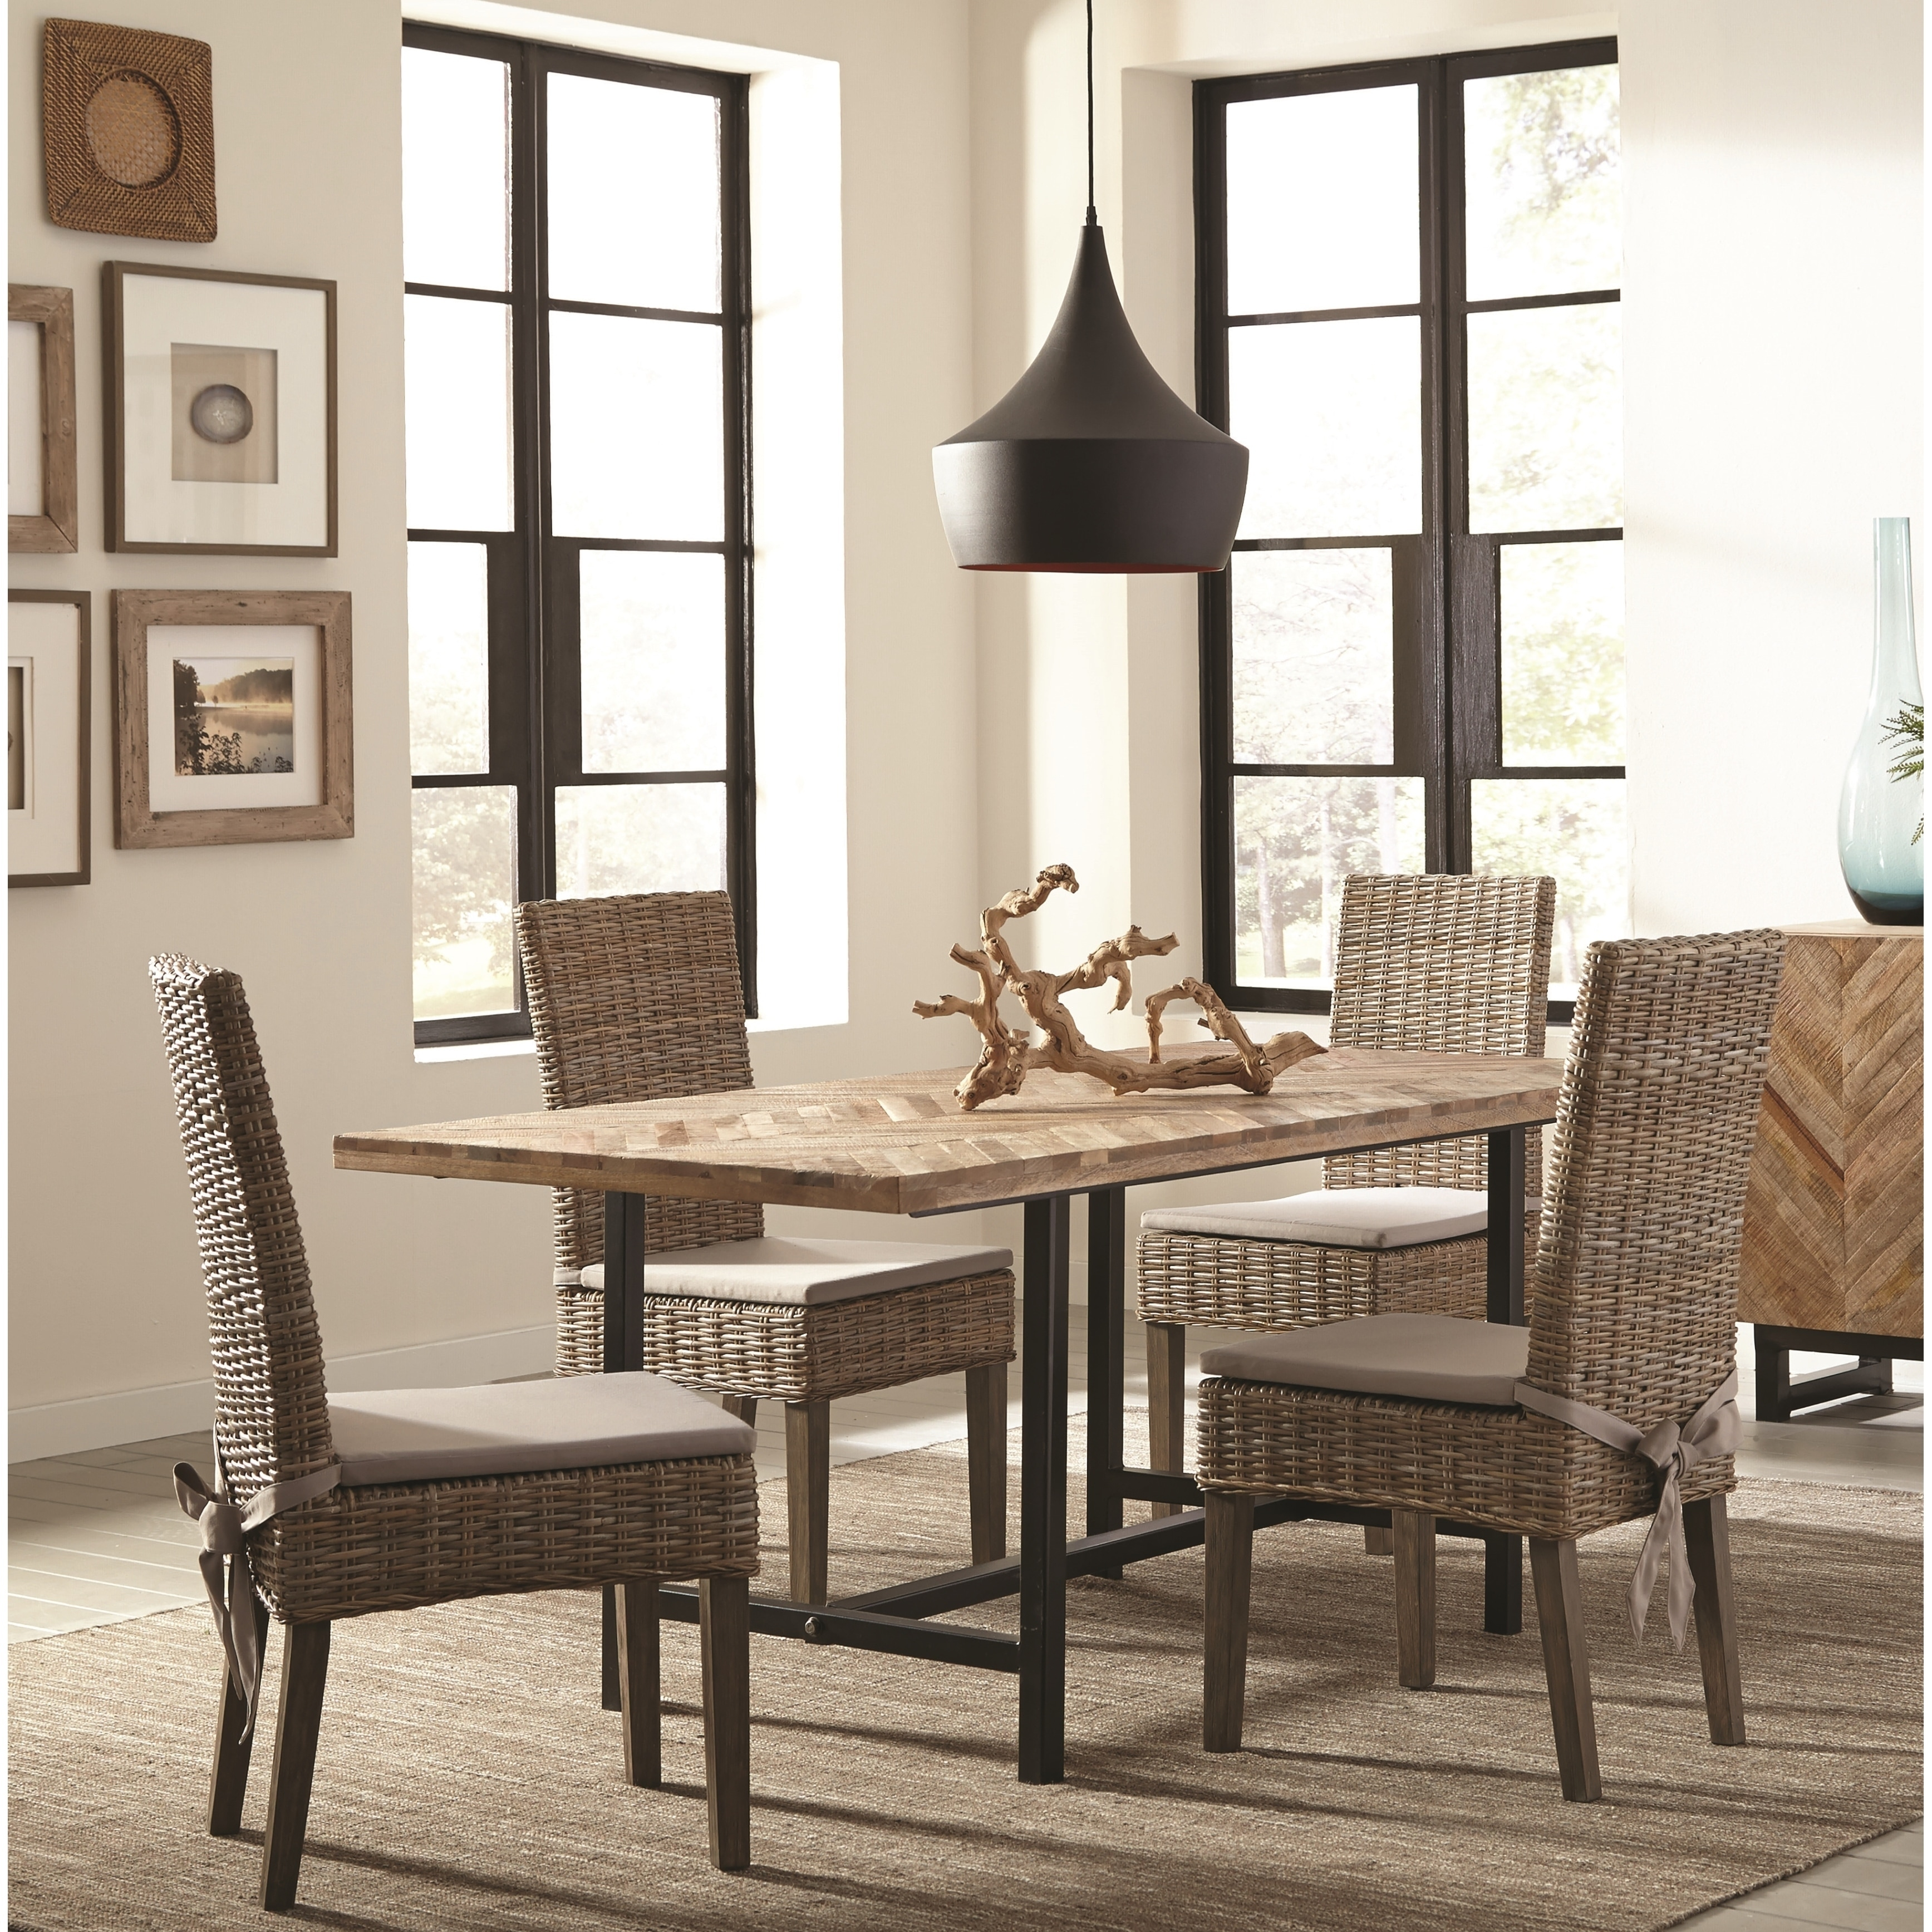 Rustic Industrial Style Dining Set With Chevron Pattern Wood Table Top    Free Shipping Today   Overstock   26145110